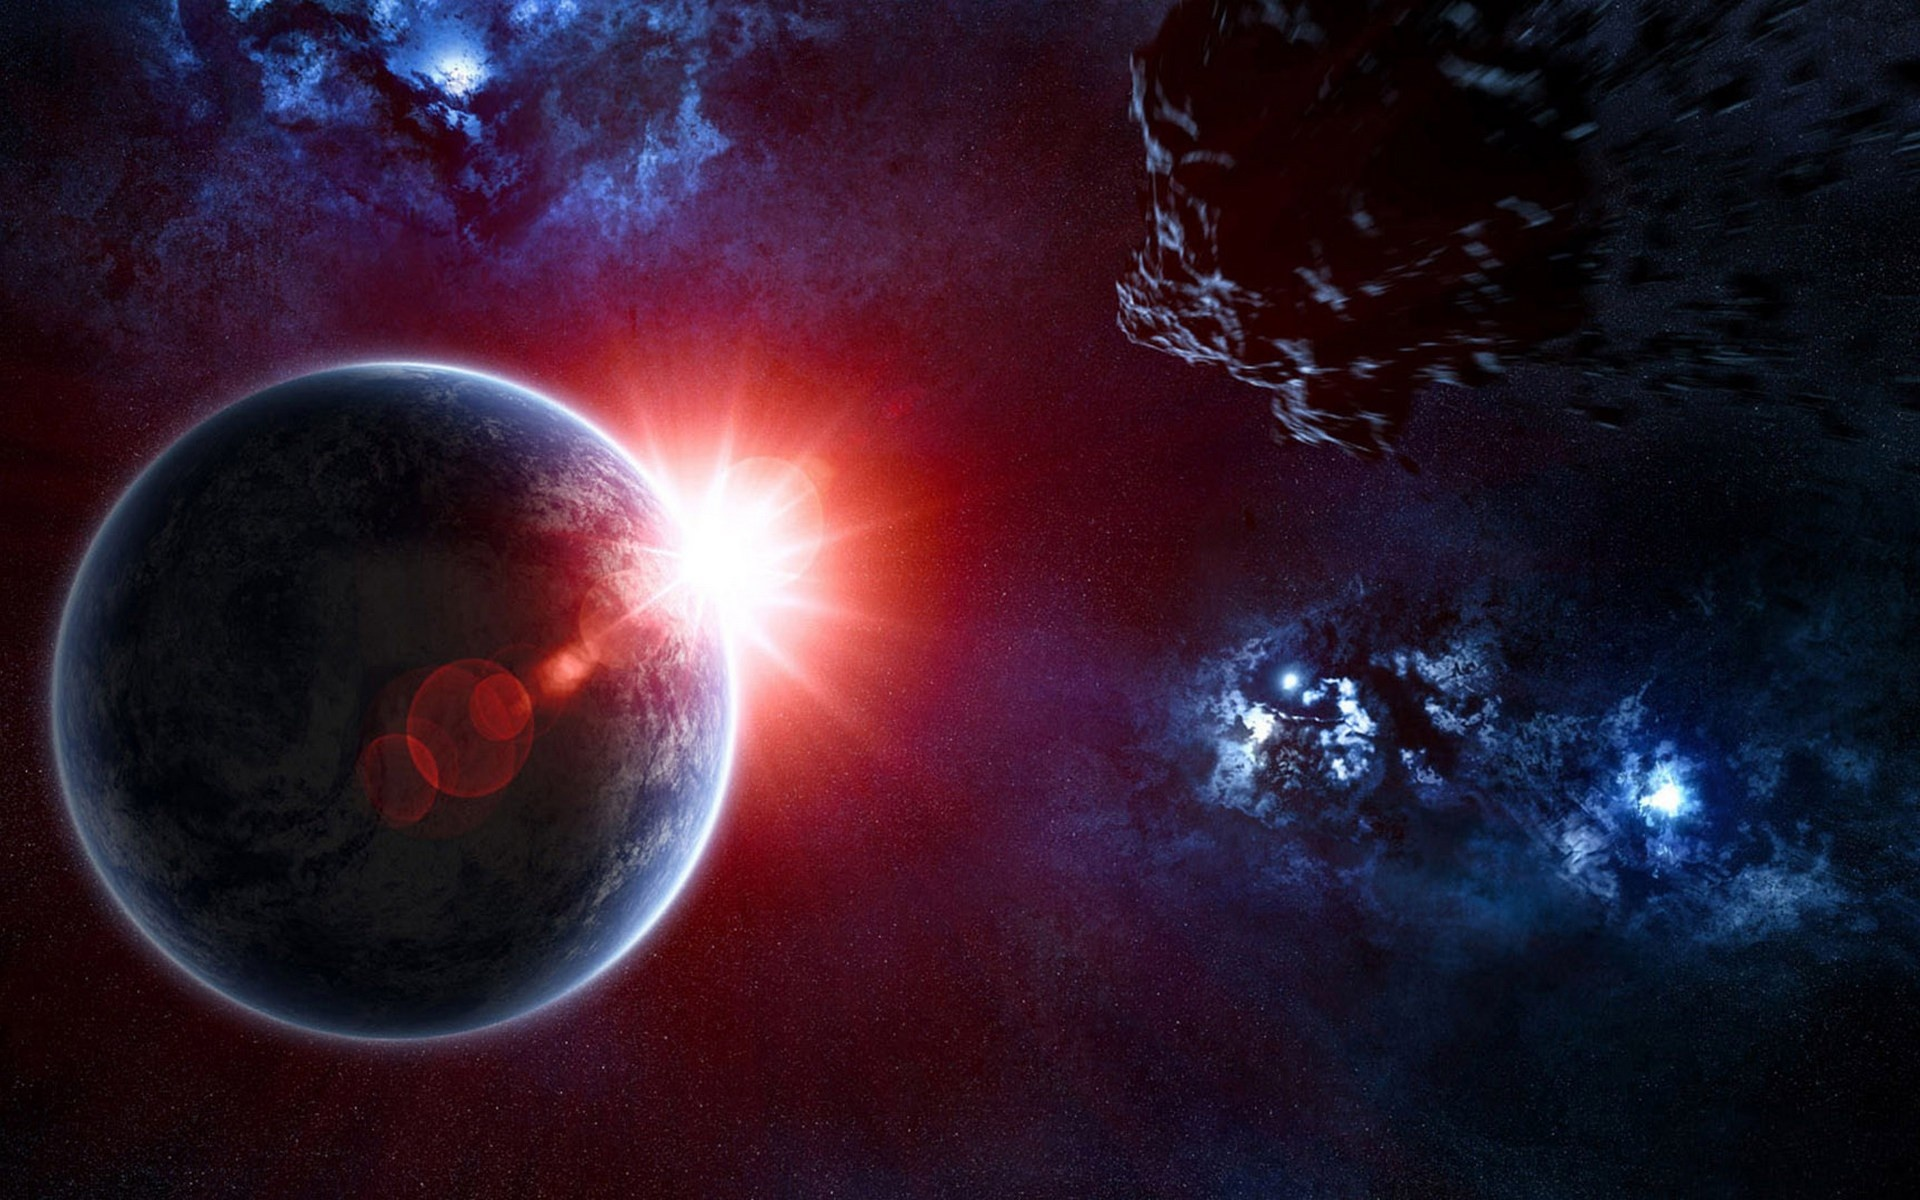 3d space wallpapers 1920x1200 582459 - Space wallpaper 1920x1200 ...